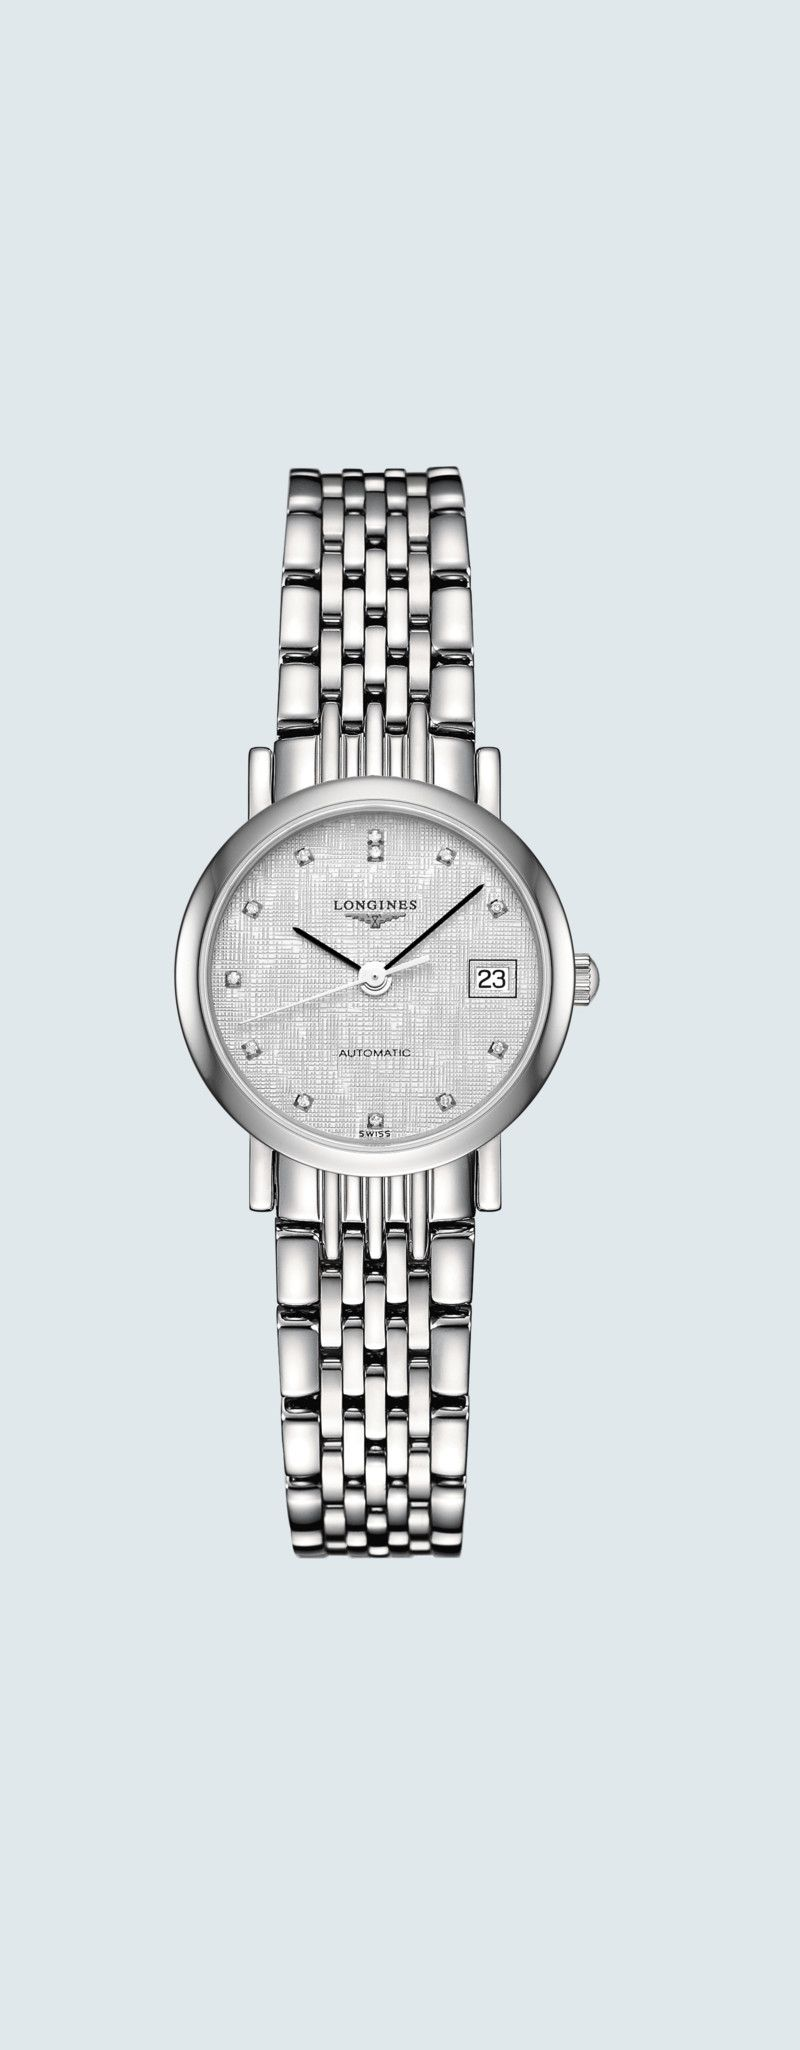 25.50 mm Stainless steel case with Striped Silver dial and Stainless steel strap - case zoom view